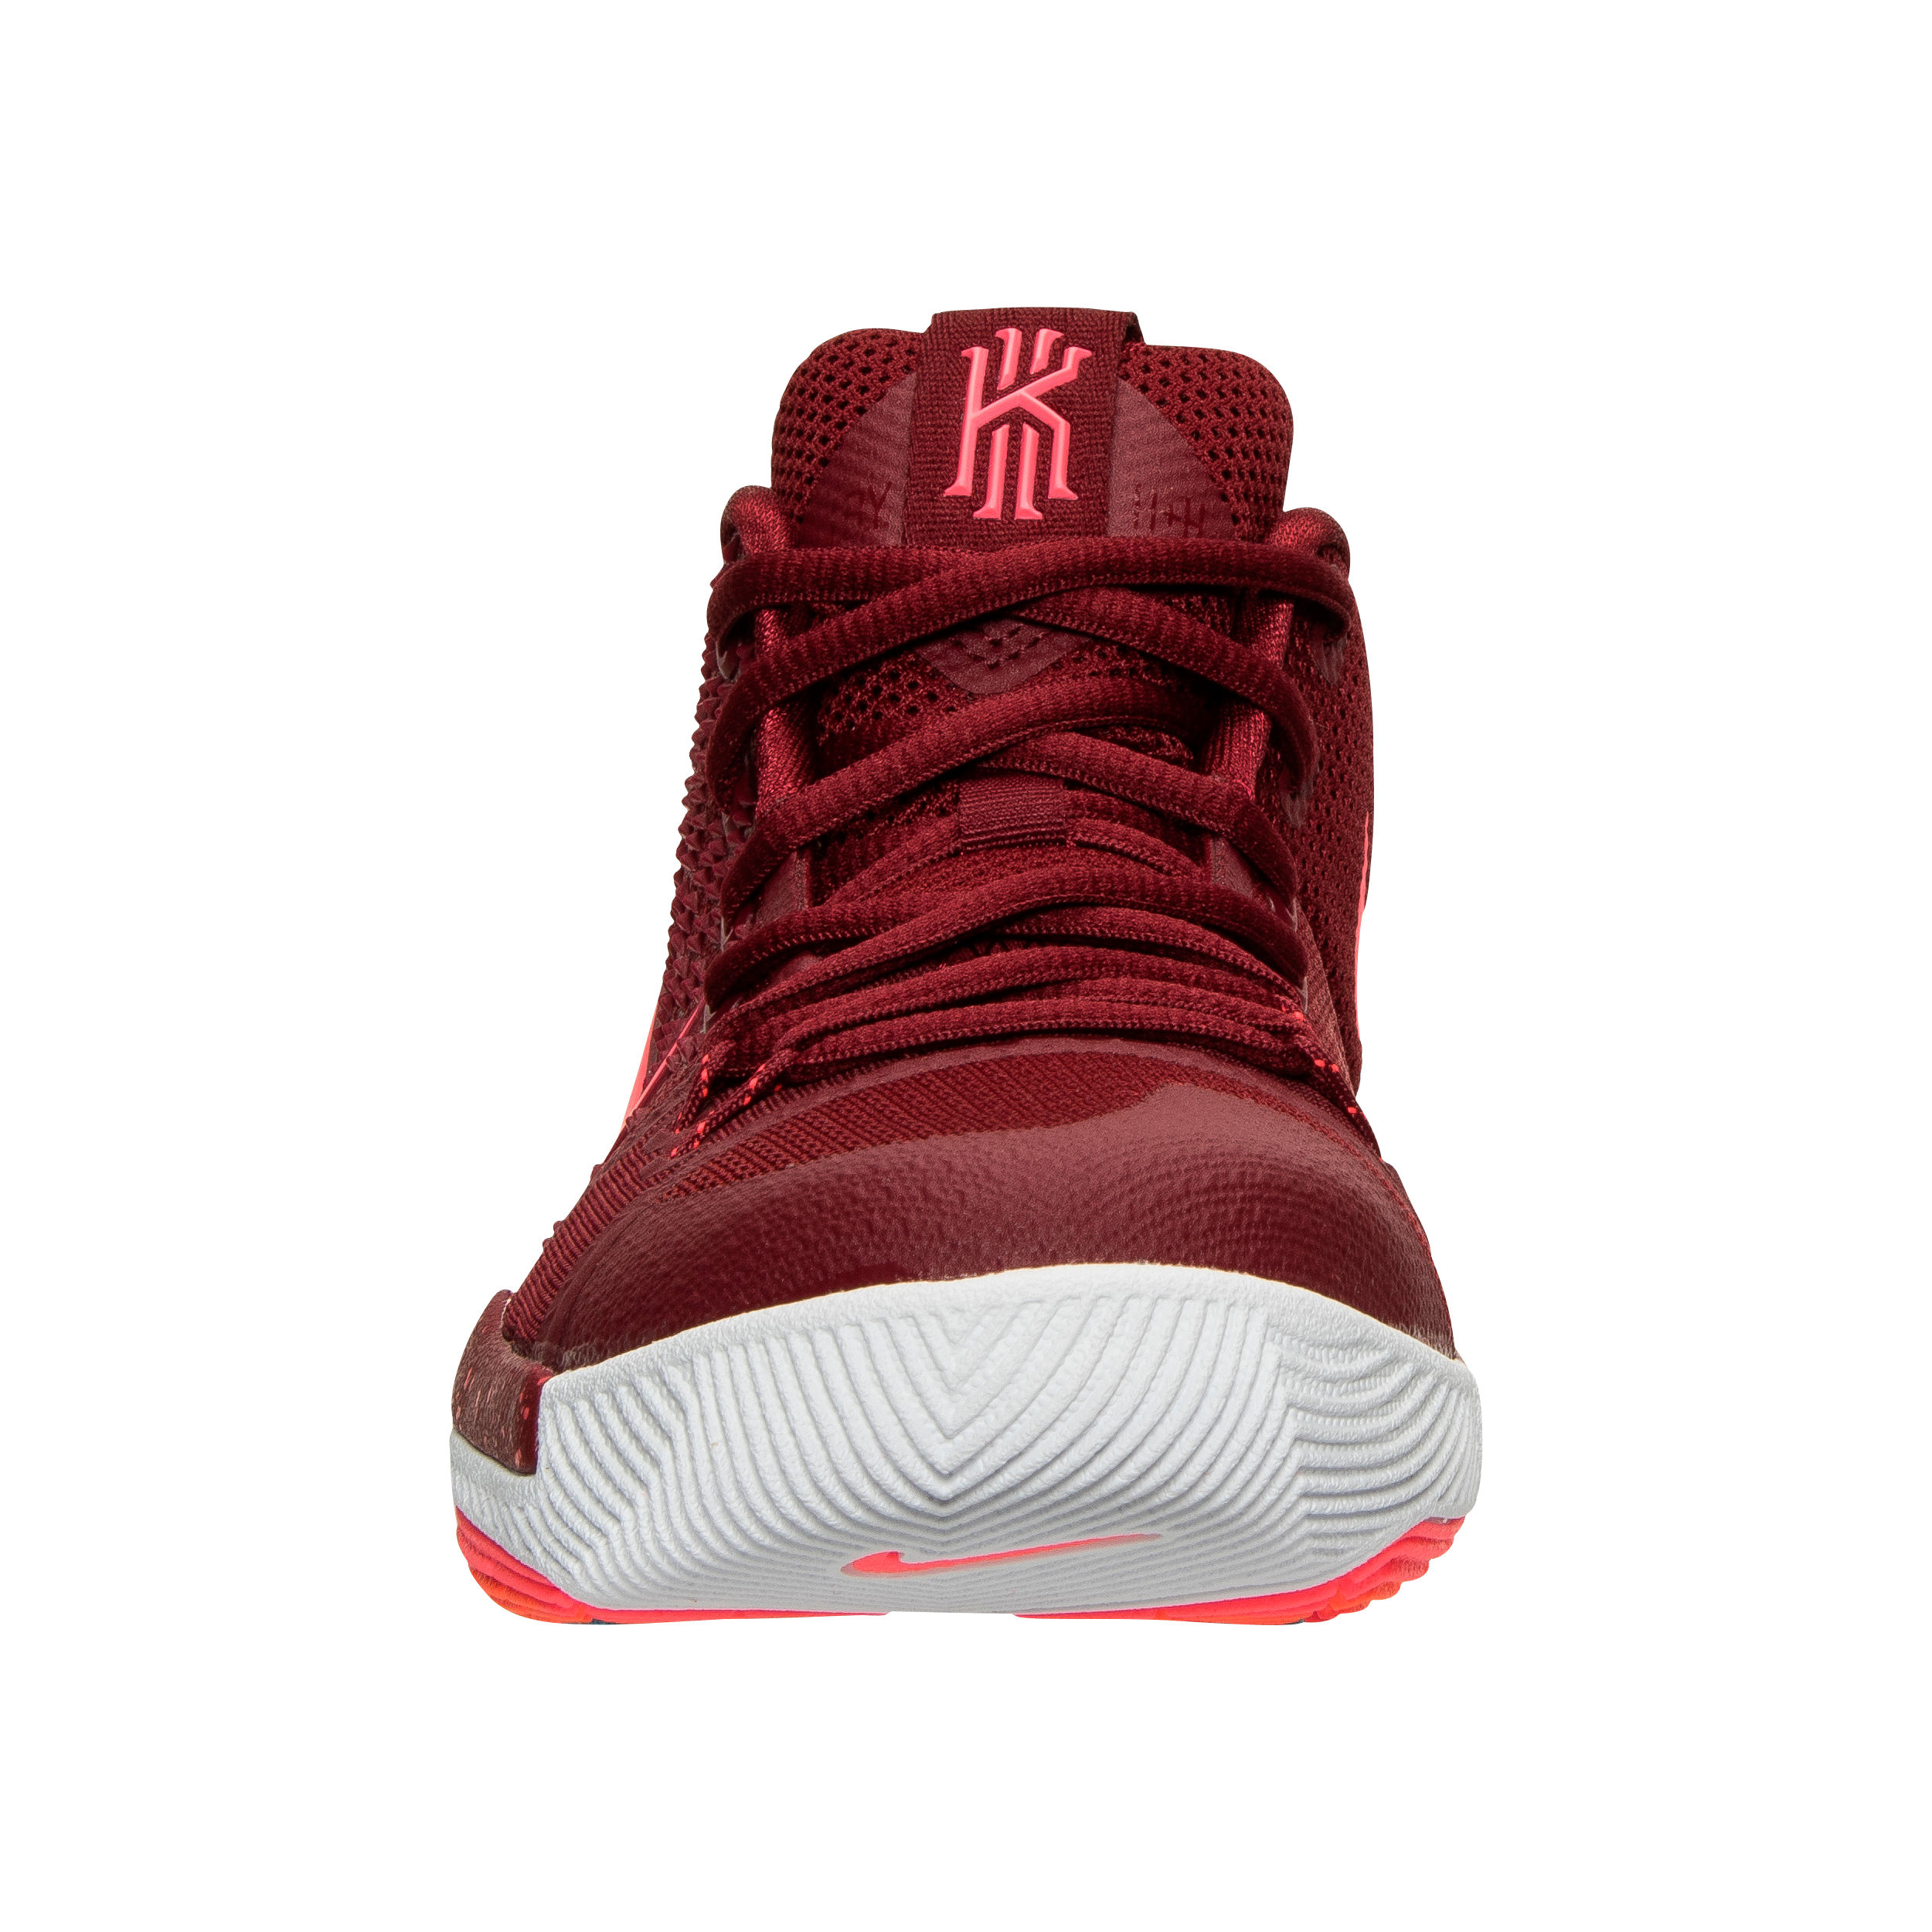 009a1639d8bd Nike Kyrie3 - Front - Team Red Total Crimson - WearTesters